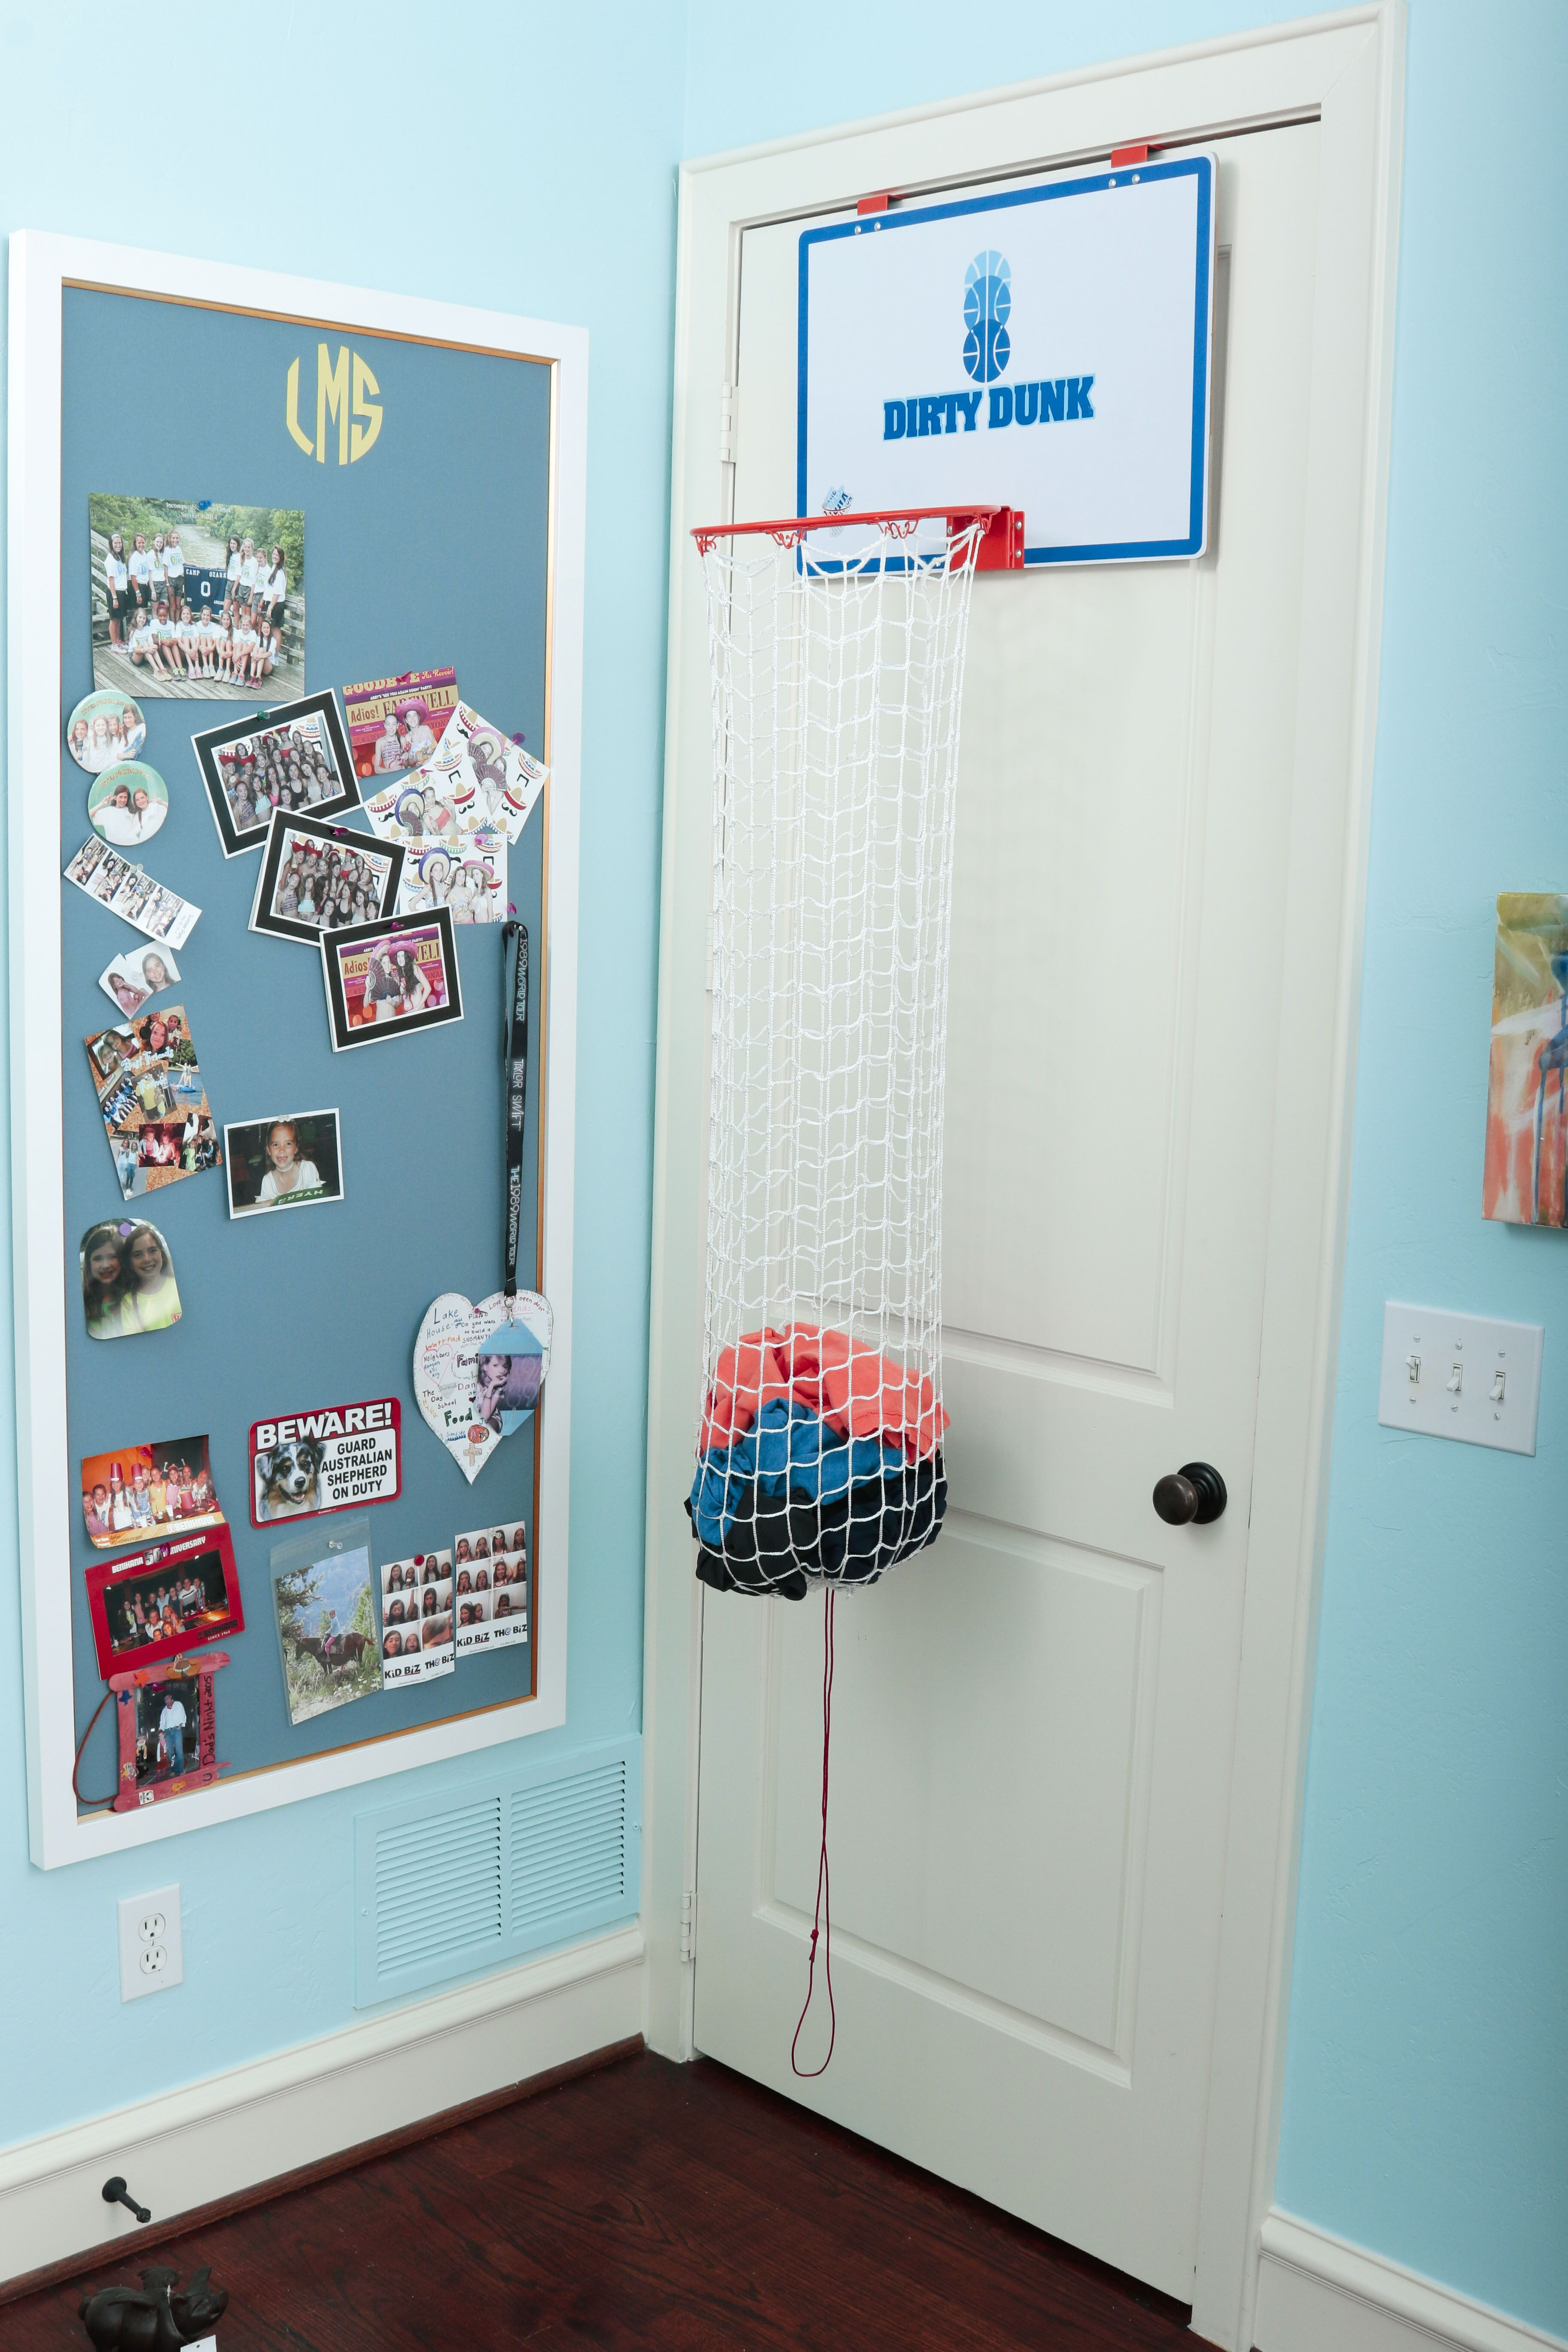 how to make a basketball hoop at home